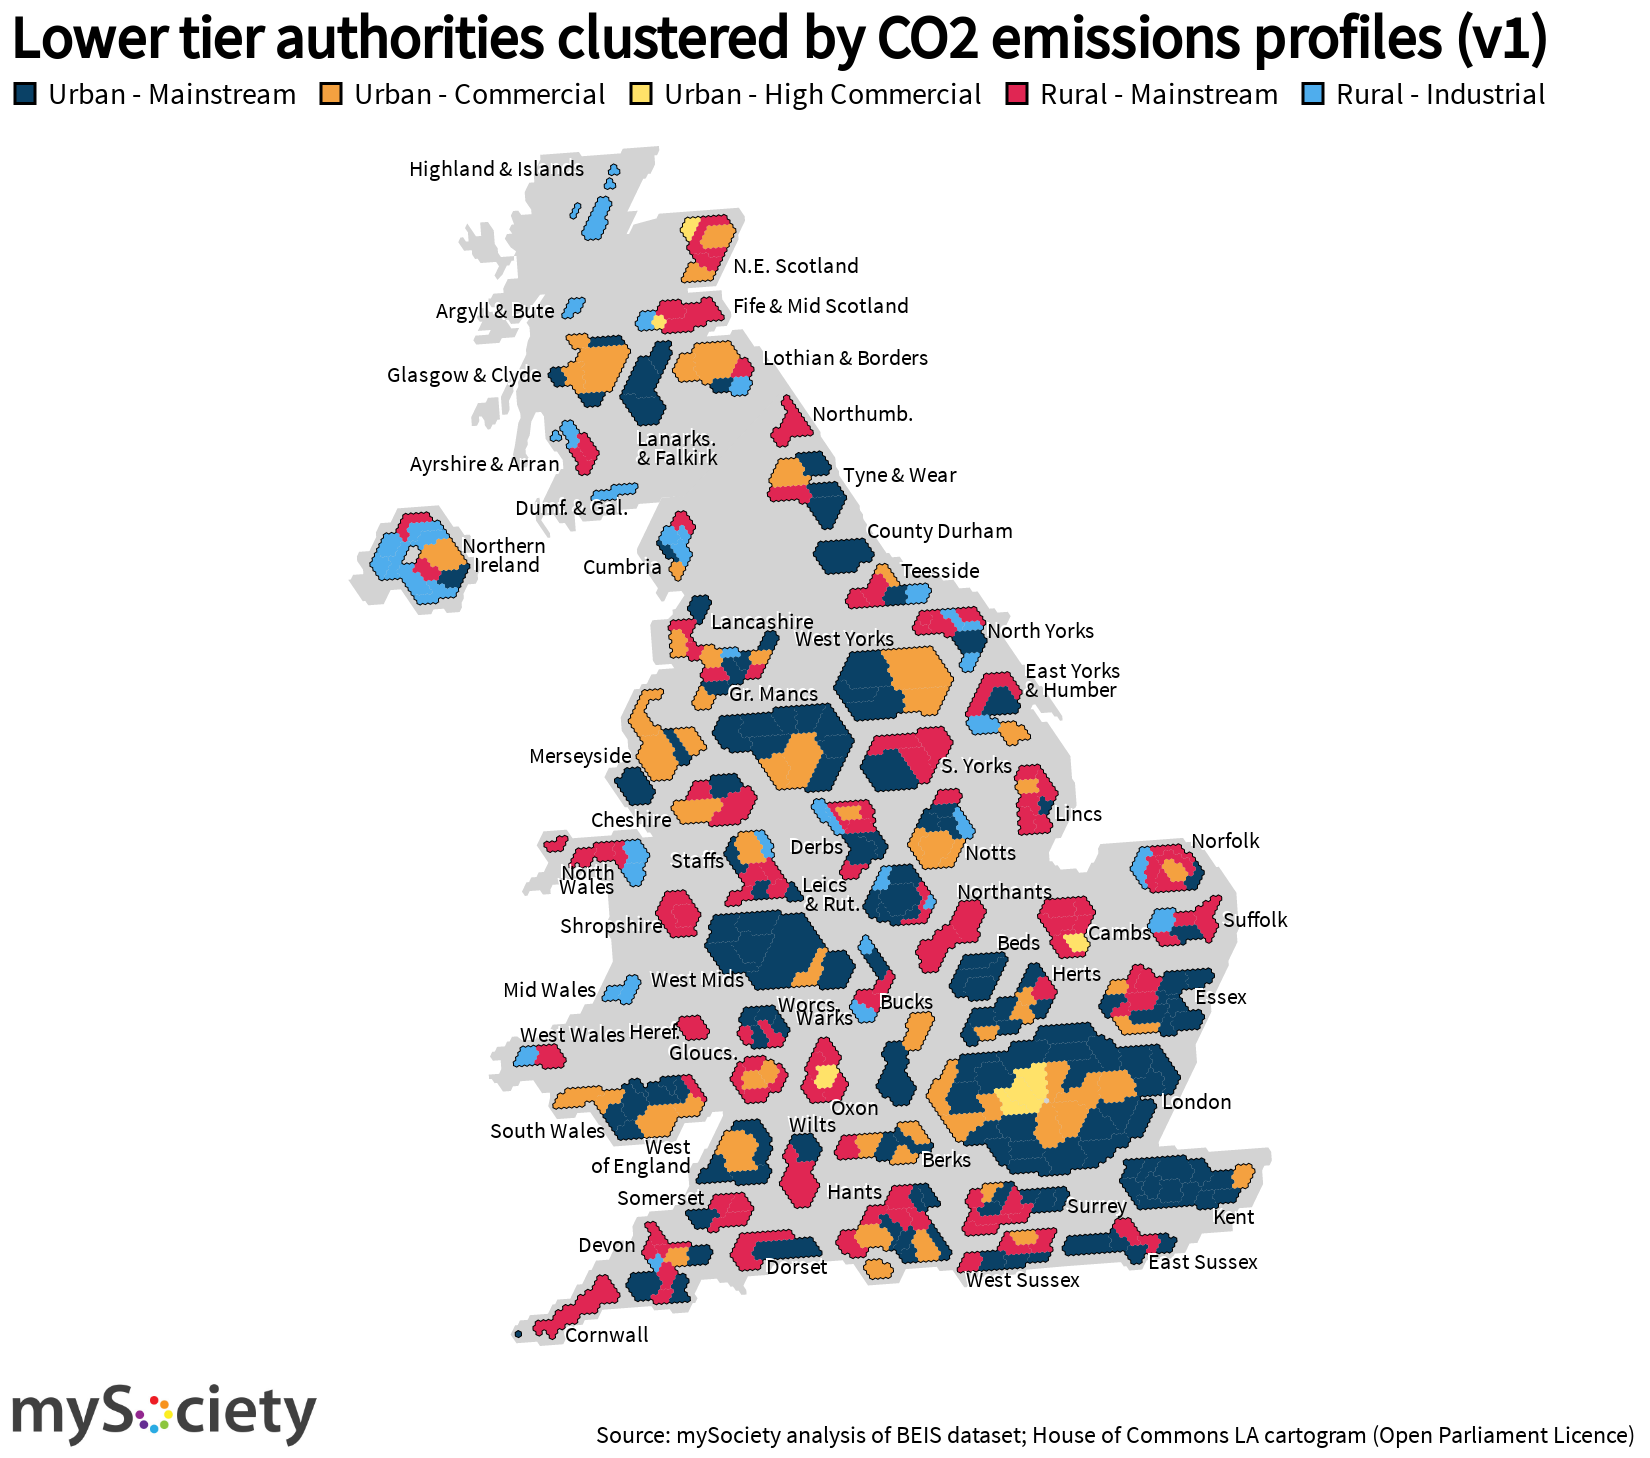 Map of different labelled clusters of Emissions profiles in the UK